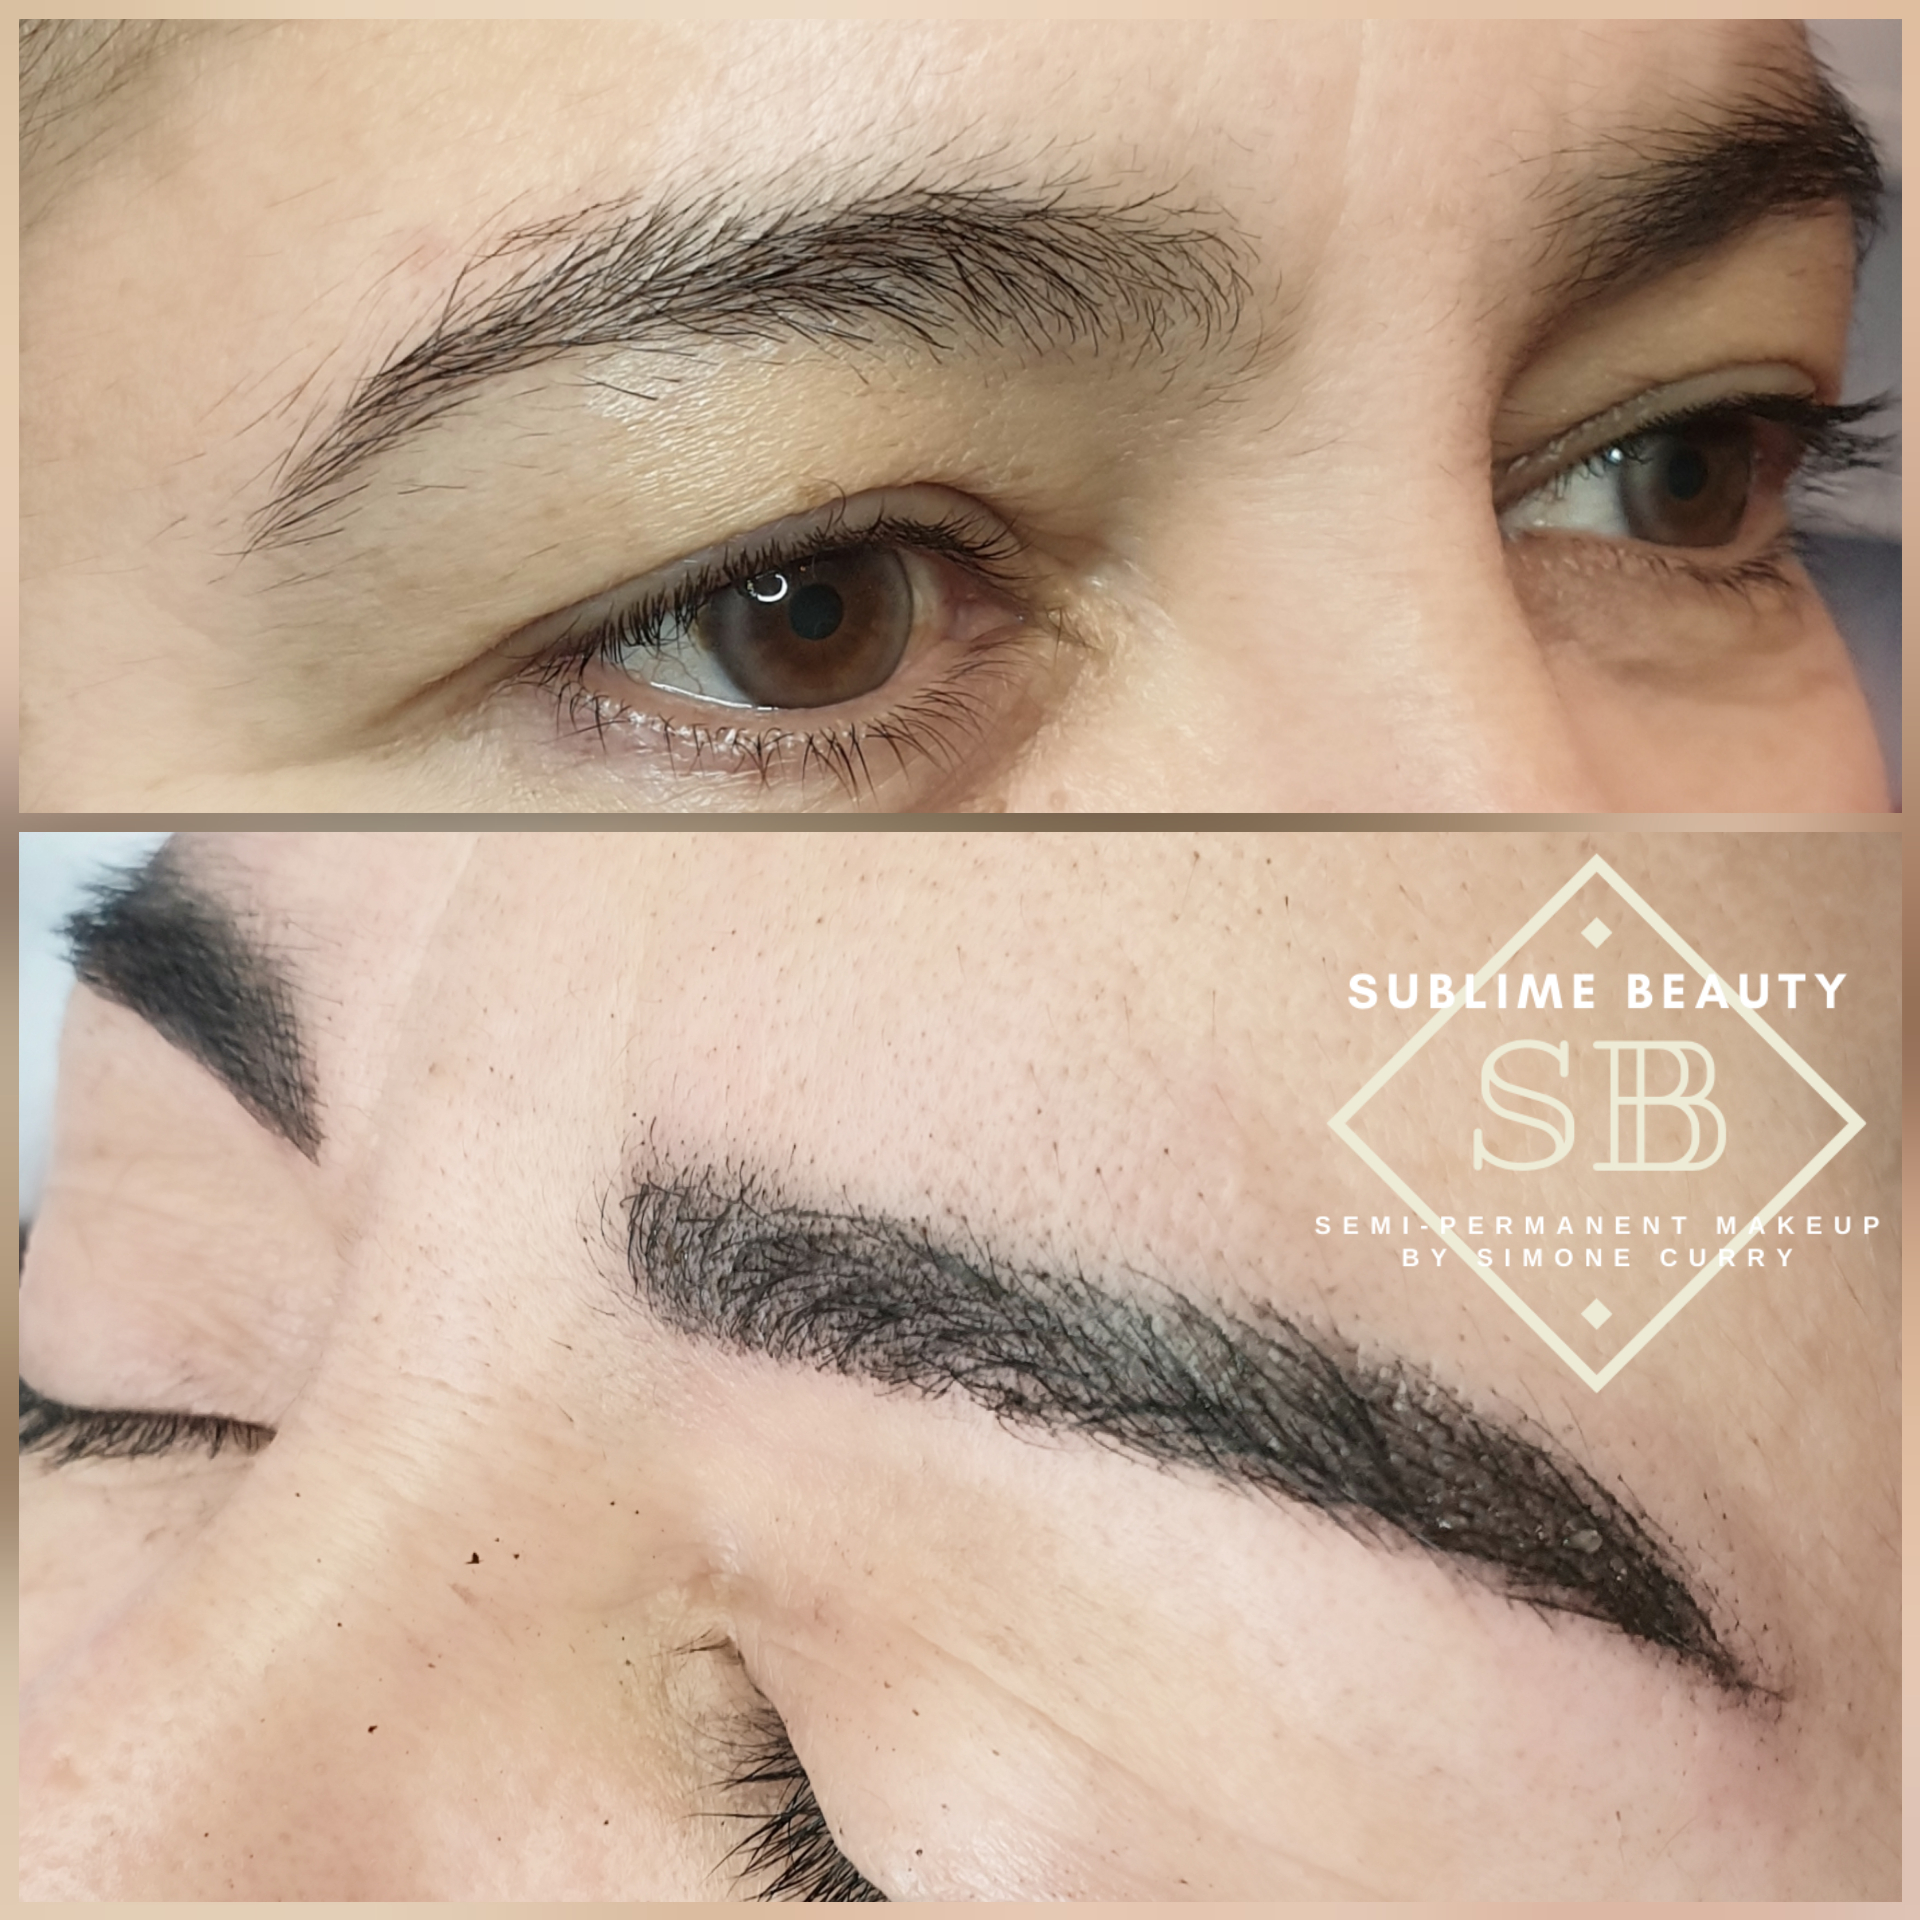 Combination brow semi permanent makeup before and after.